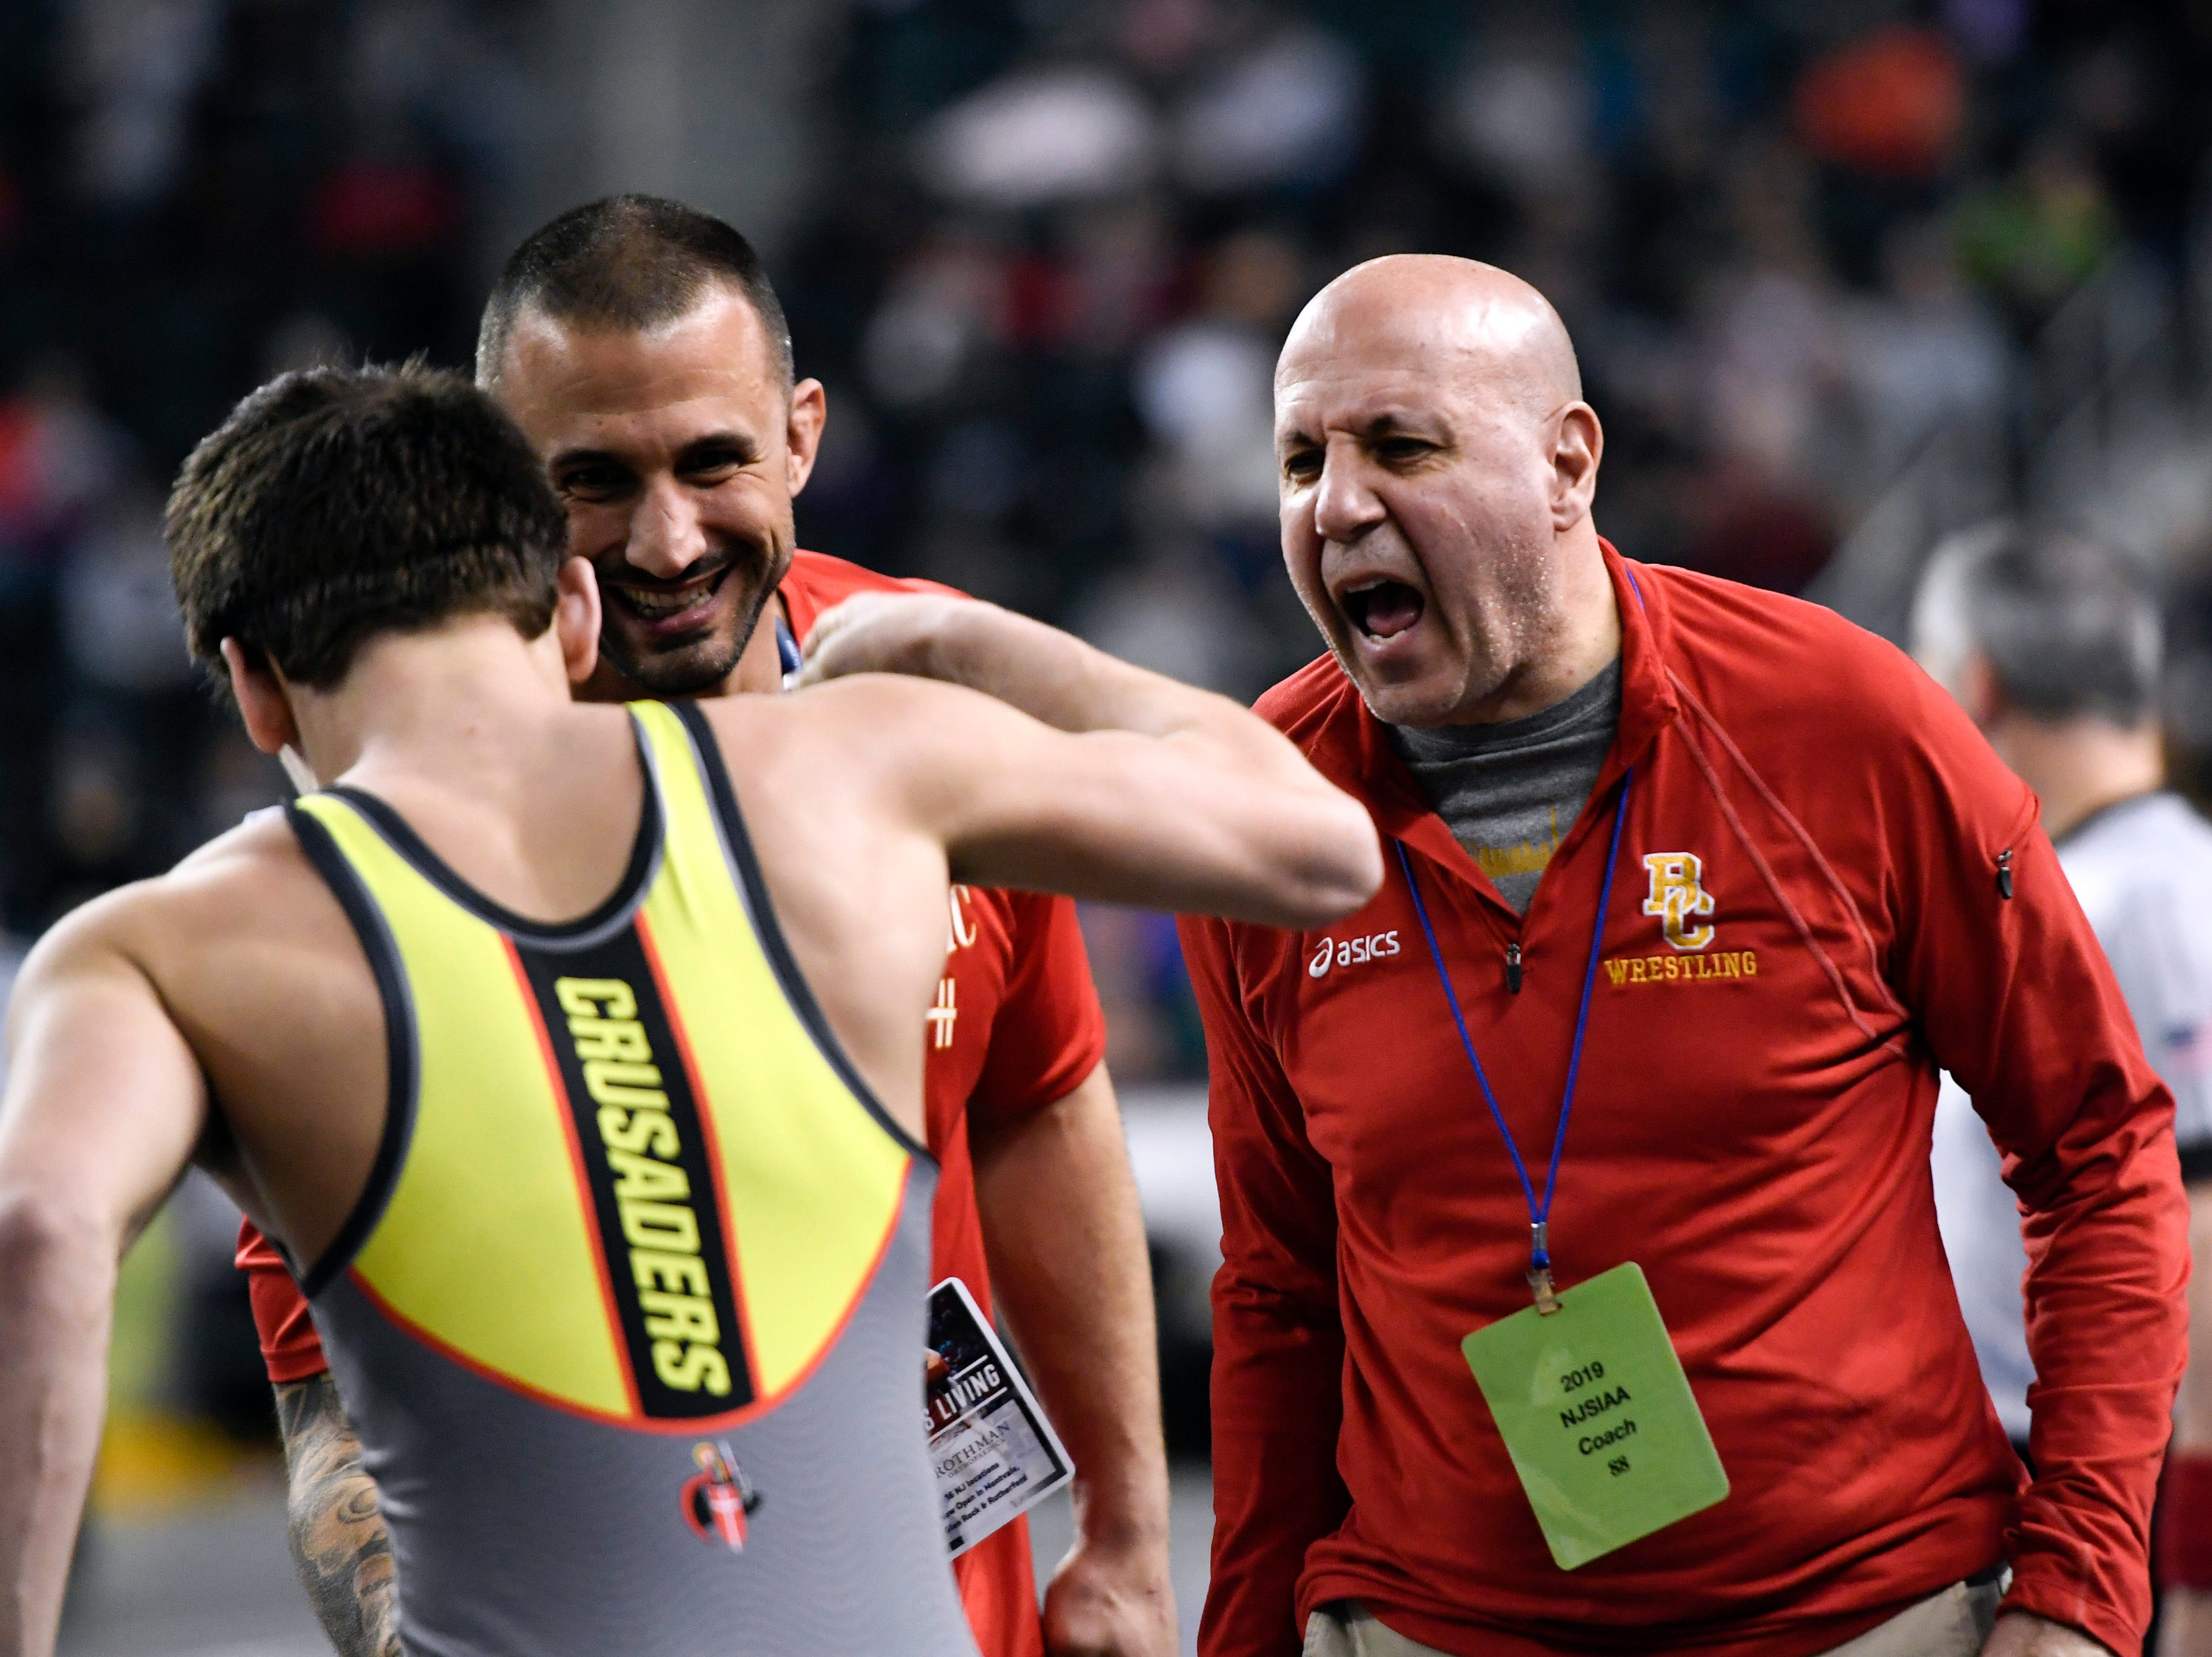 Bergen Catholic head coach David Bell celebrates with Alex Strashinsky and assistant coach Dom Santoli after Strashinsky wins his 138-pound match on Day 2 of the NJSIAA state wrestling tournament on Friday, March 1, 2019, in Atlantic City.